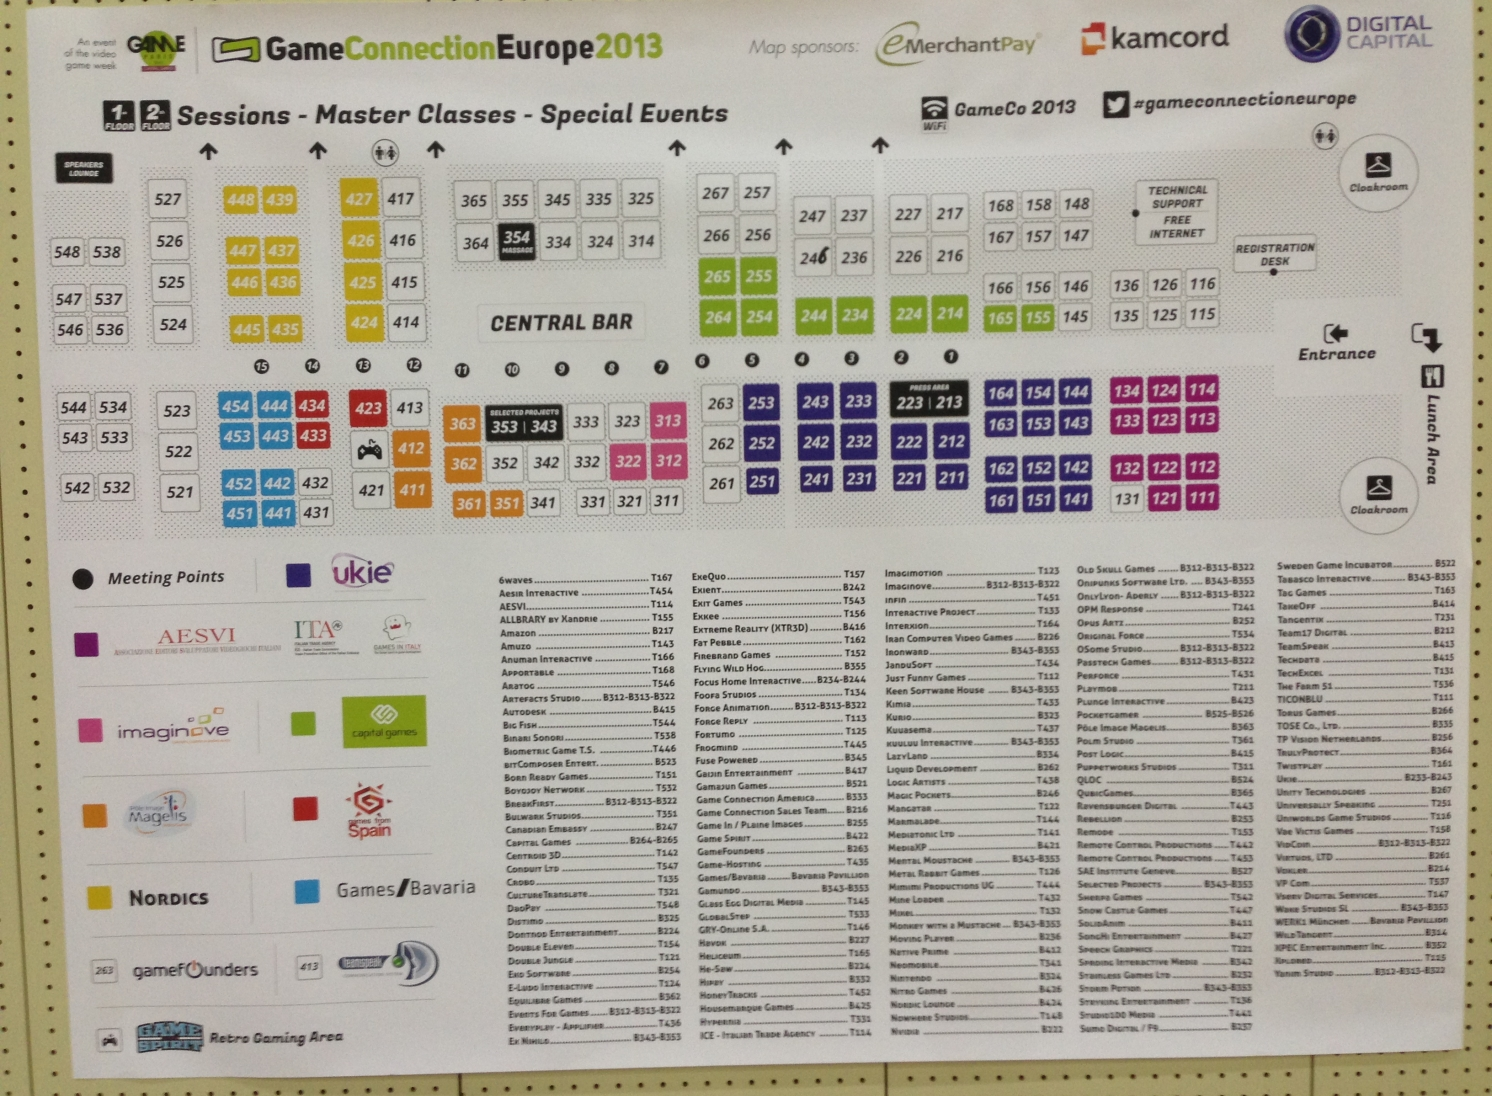 GC Europe conference map